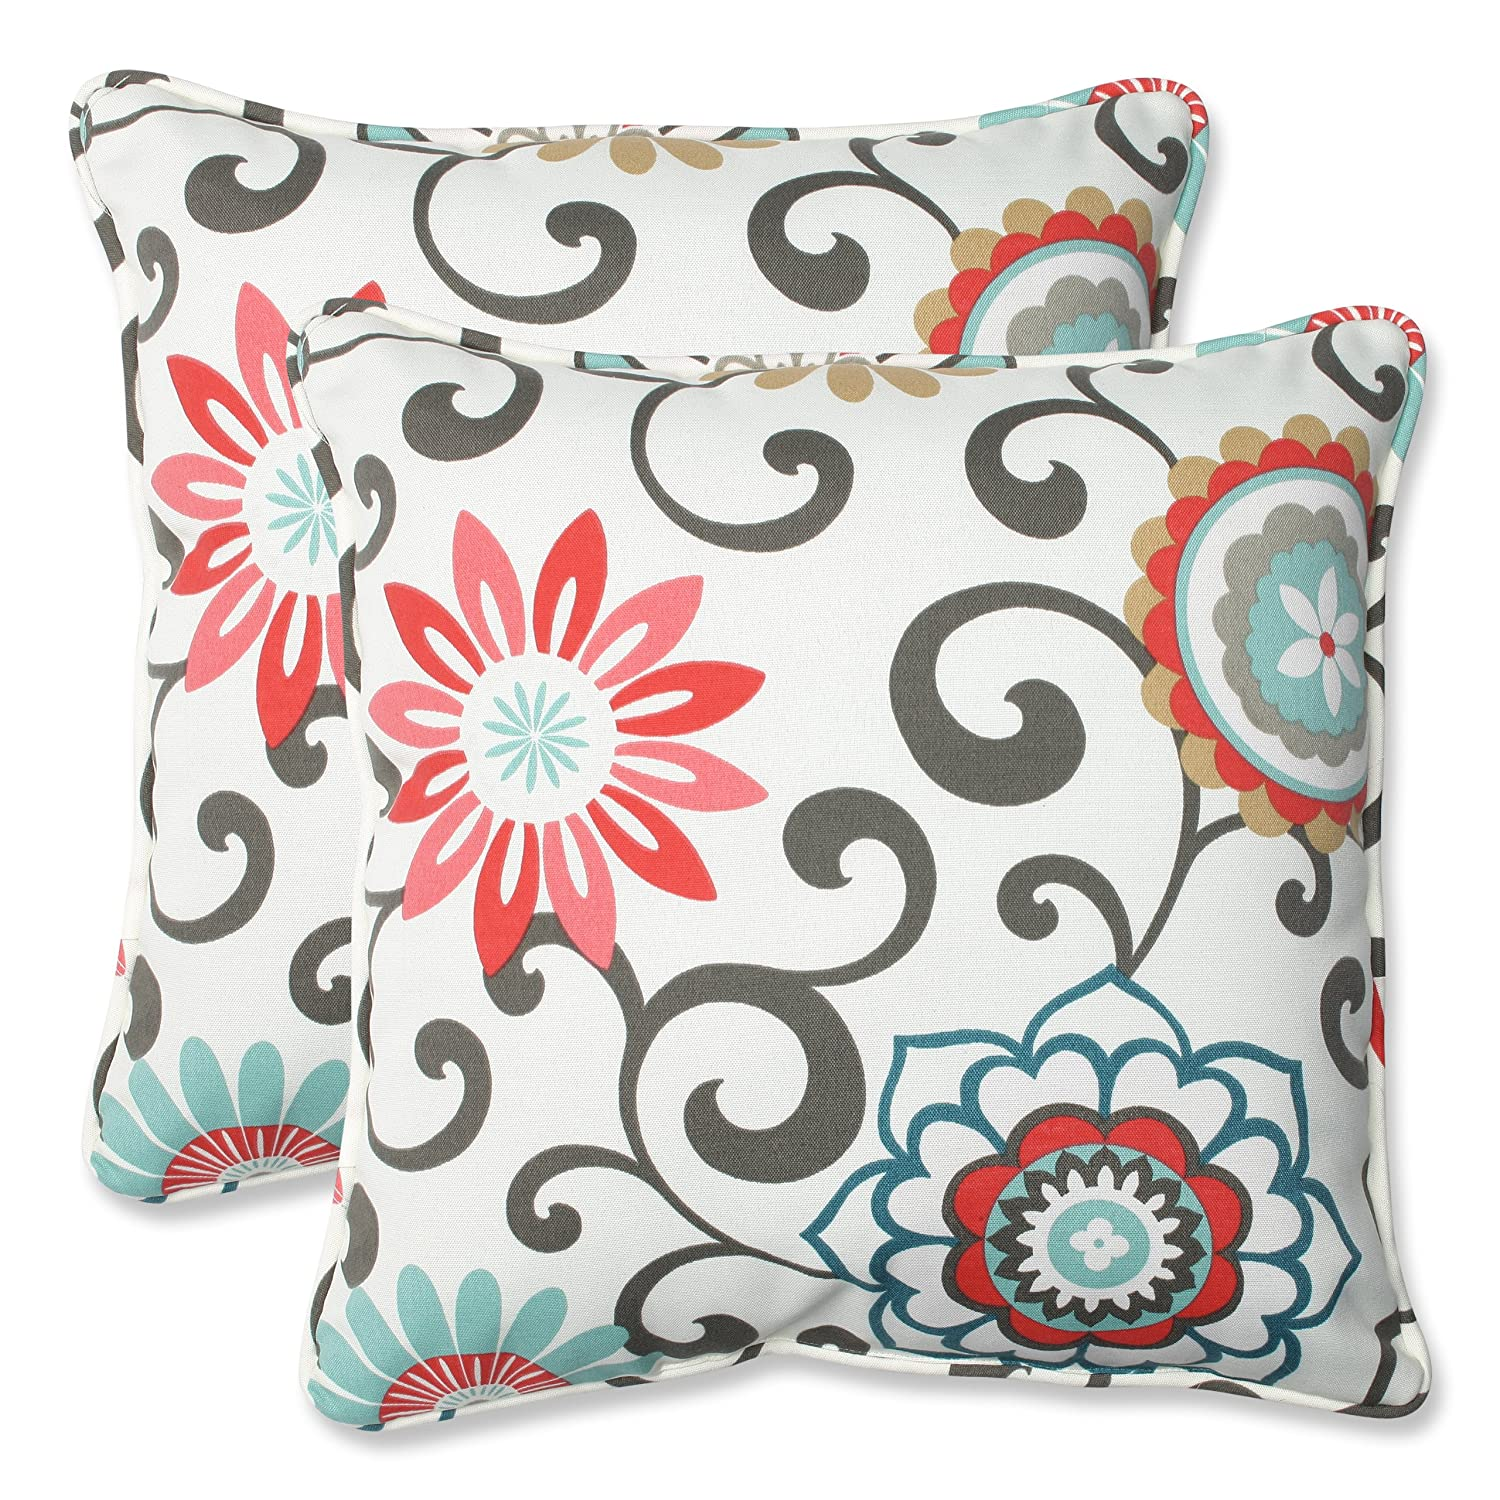 Amazon.com: Decorative Pillows: Patio, Lawn & Garden